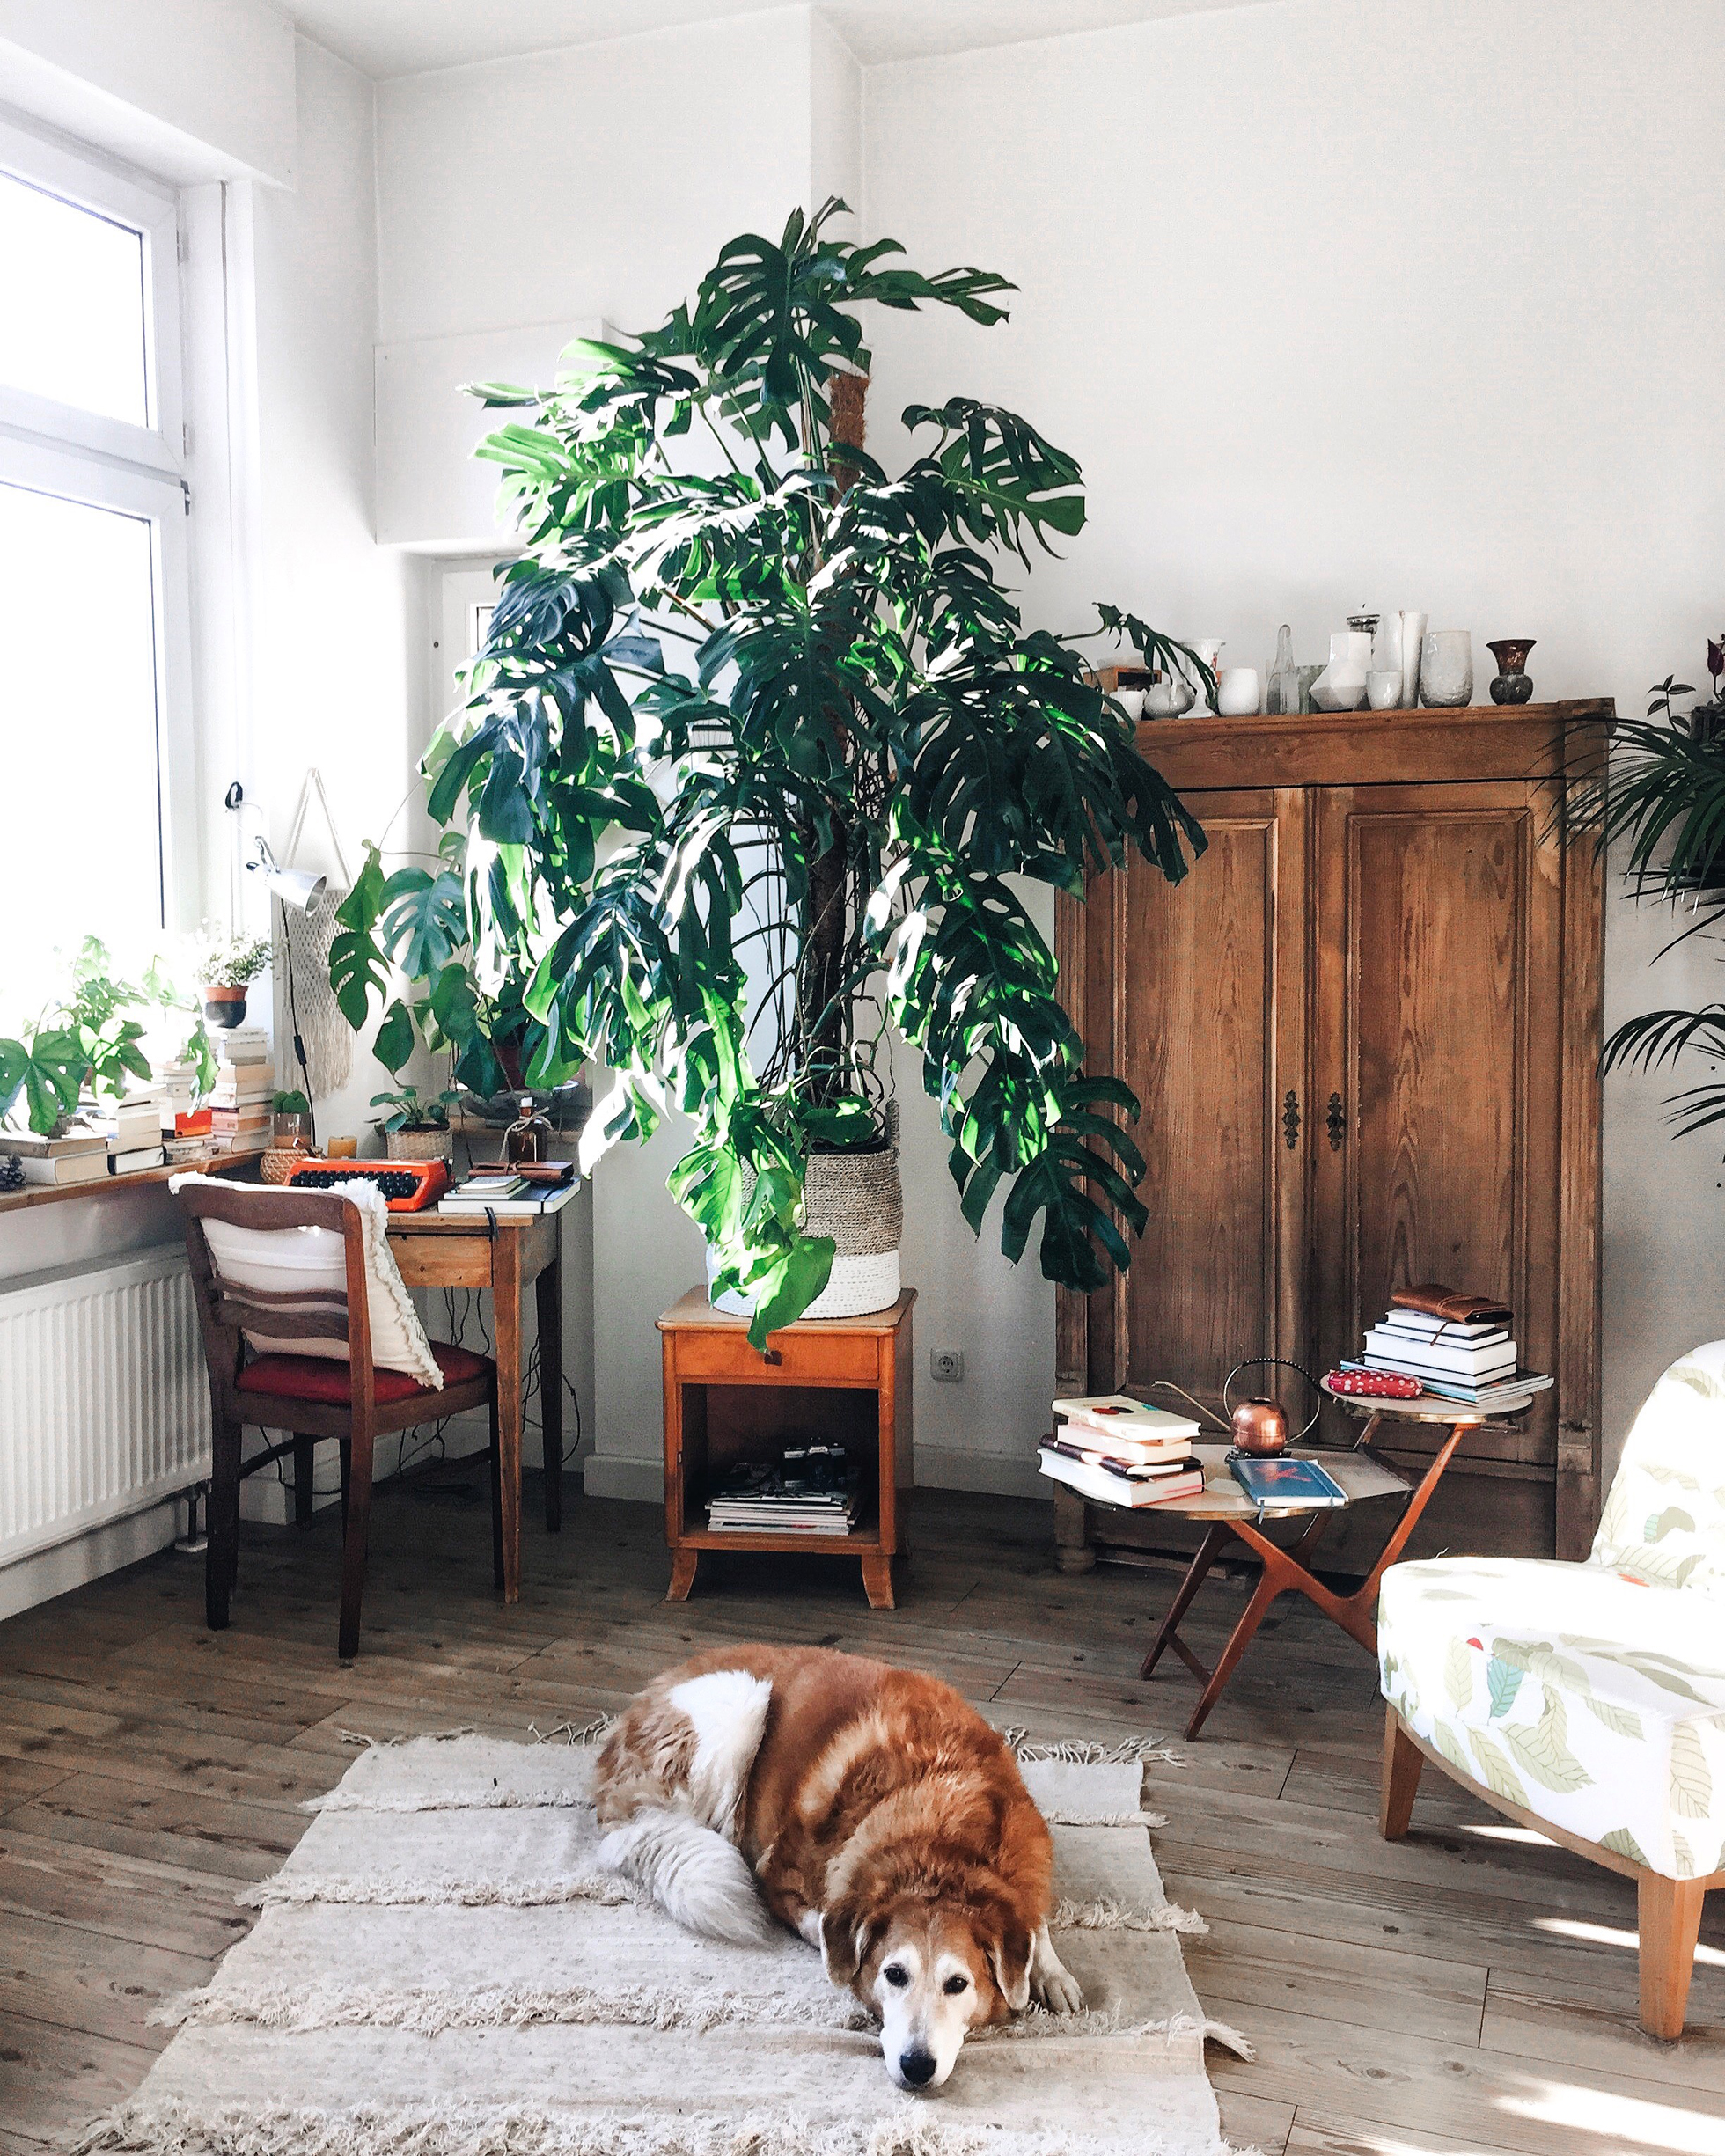 Houseplants and dog in a white room